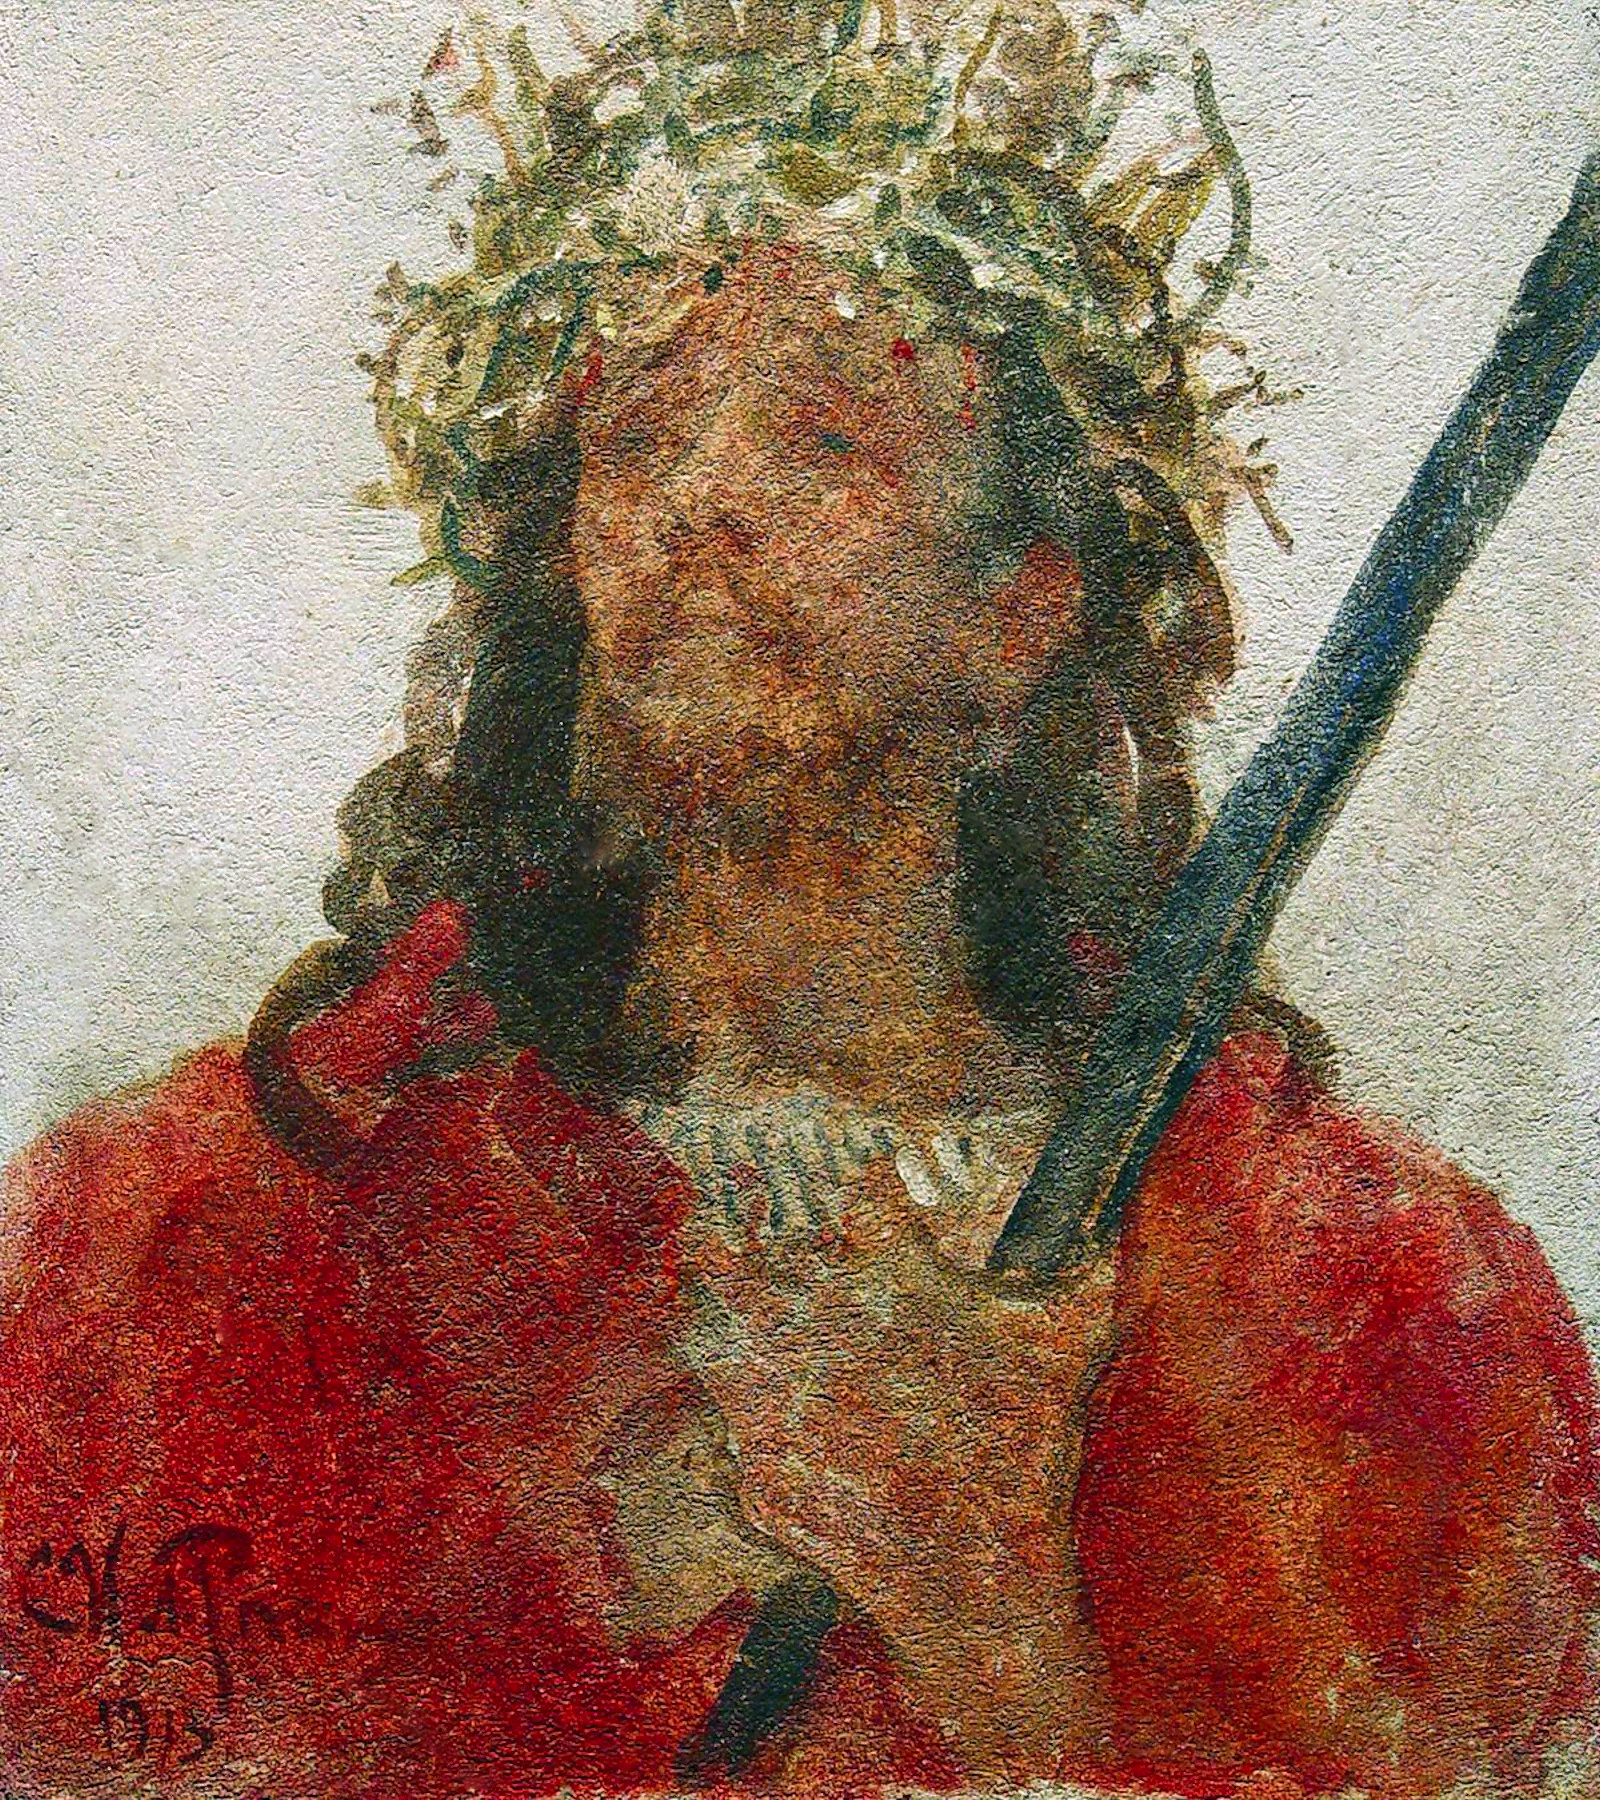 00 Ilya Repin. Christ Wearing the Crown of Thorns. 1913